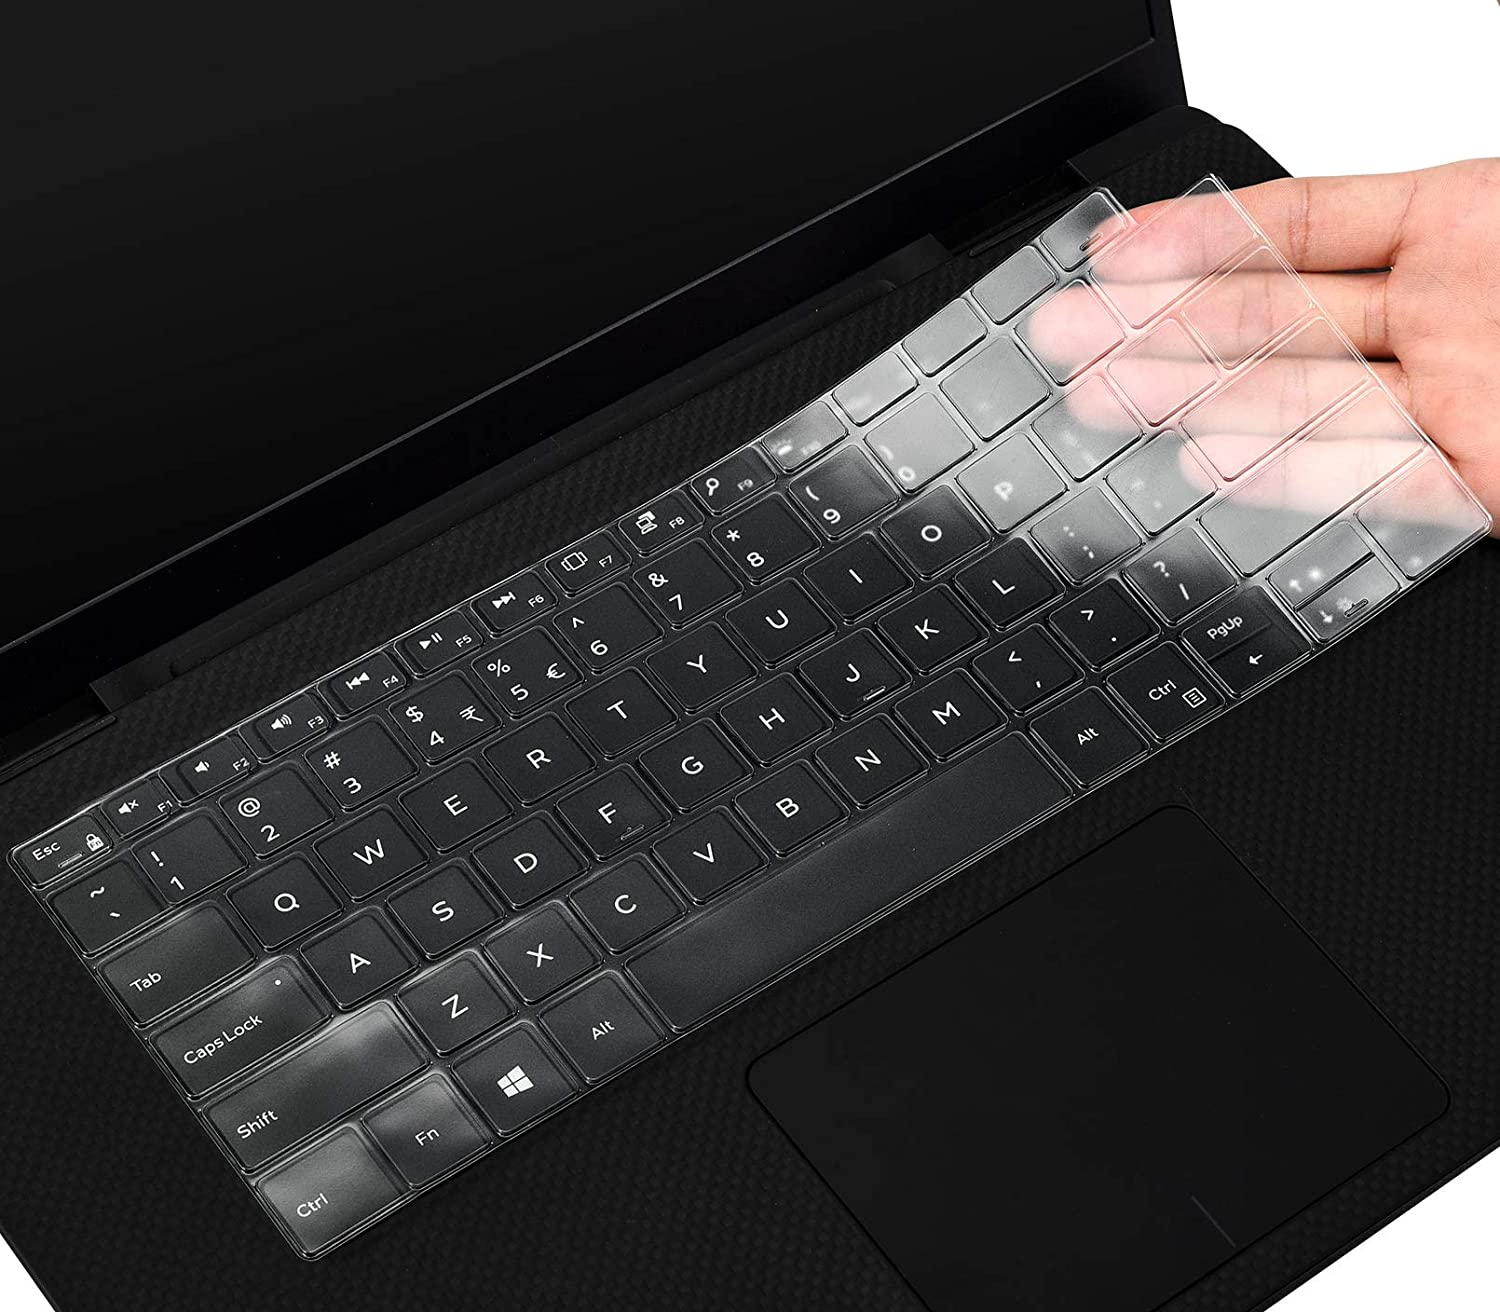 CaseBuy Premium Keyboard Cover Skin for Dell New XPS 13 9300 9310 13.4-inch Touchscreen Only, Ultra Thin TPU Protector(NOT Fit XPS 13 9380 9370 9350 )